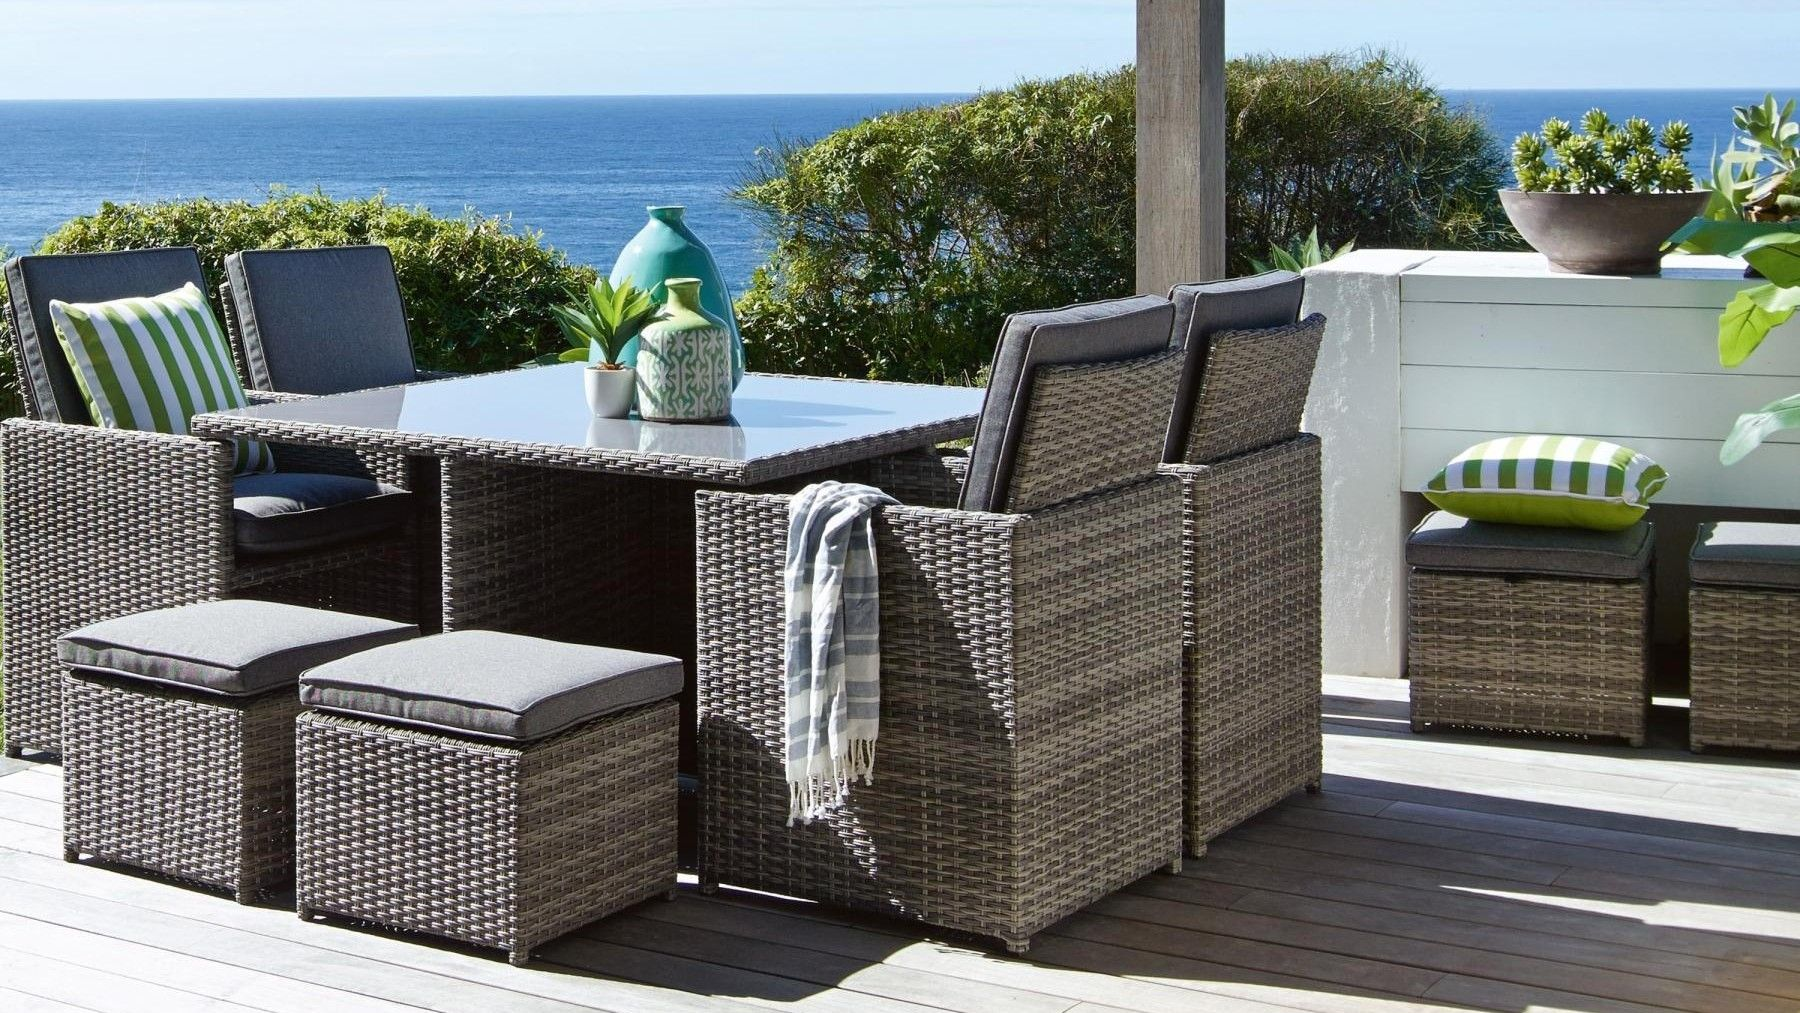 mours 9 piece outdoor dining setting outdoor outdoor dining set rh pinterest com